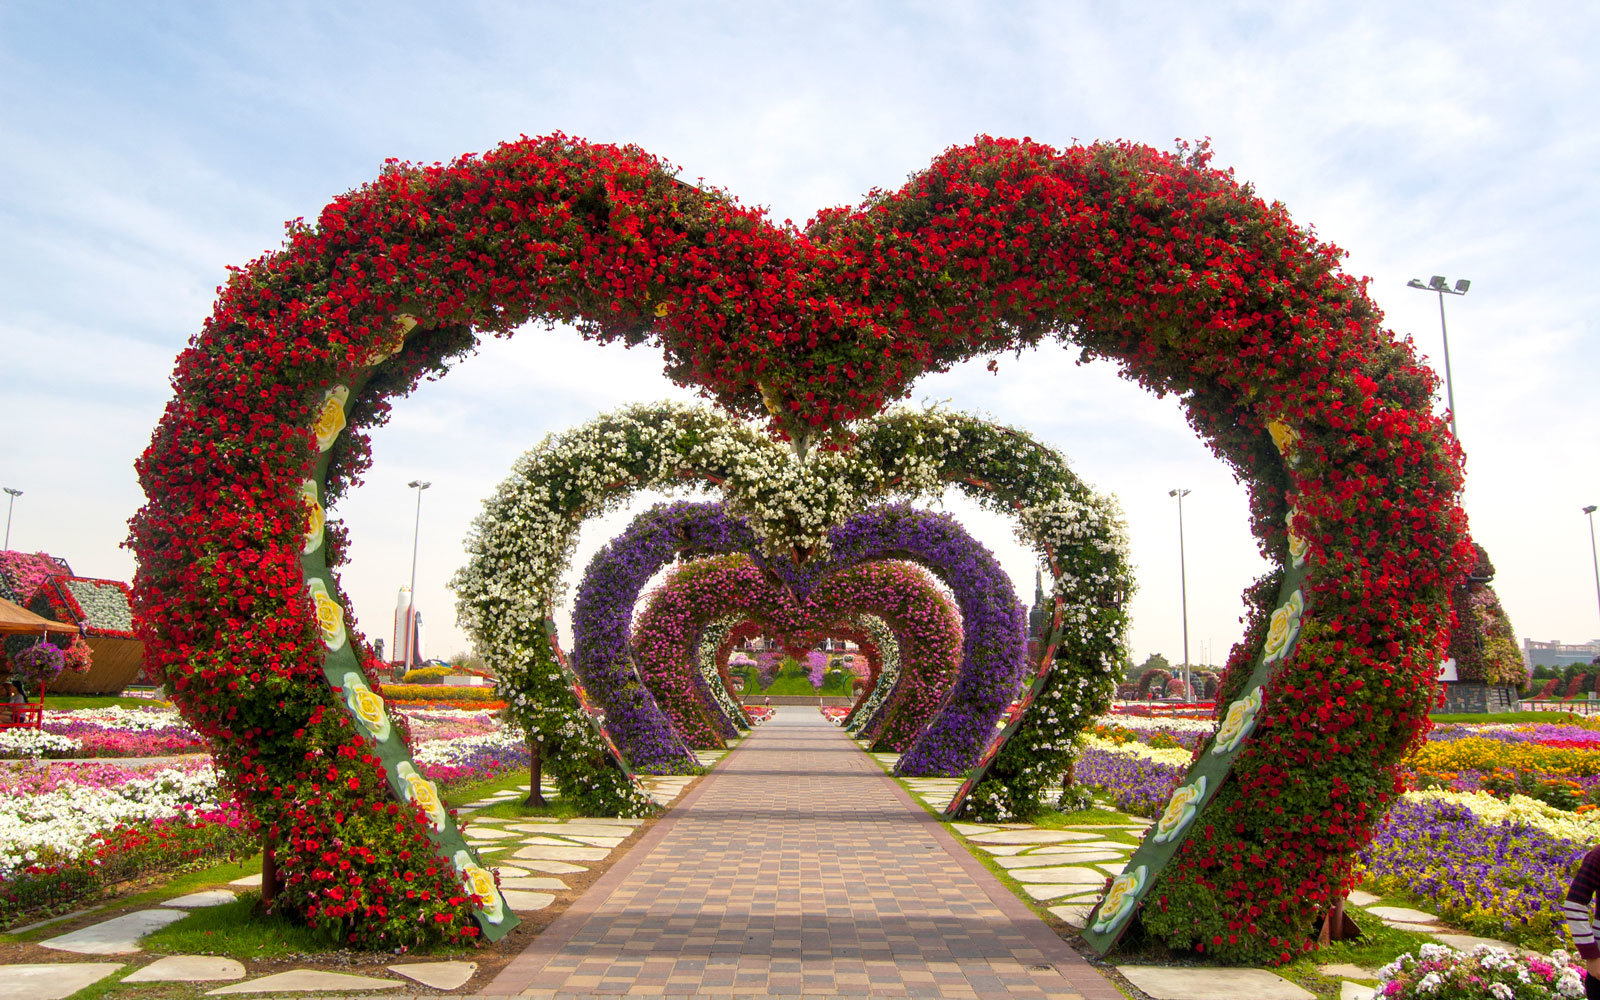 The World's Biggest Flower Garden Sits in the Middle of a ... - photo#5